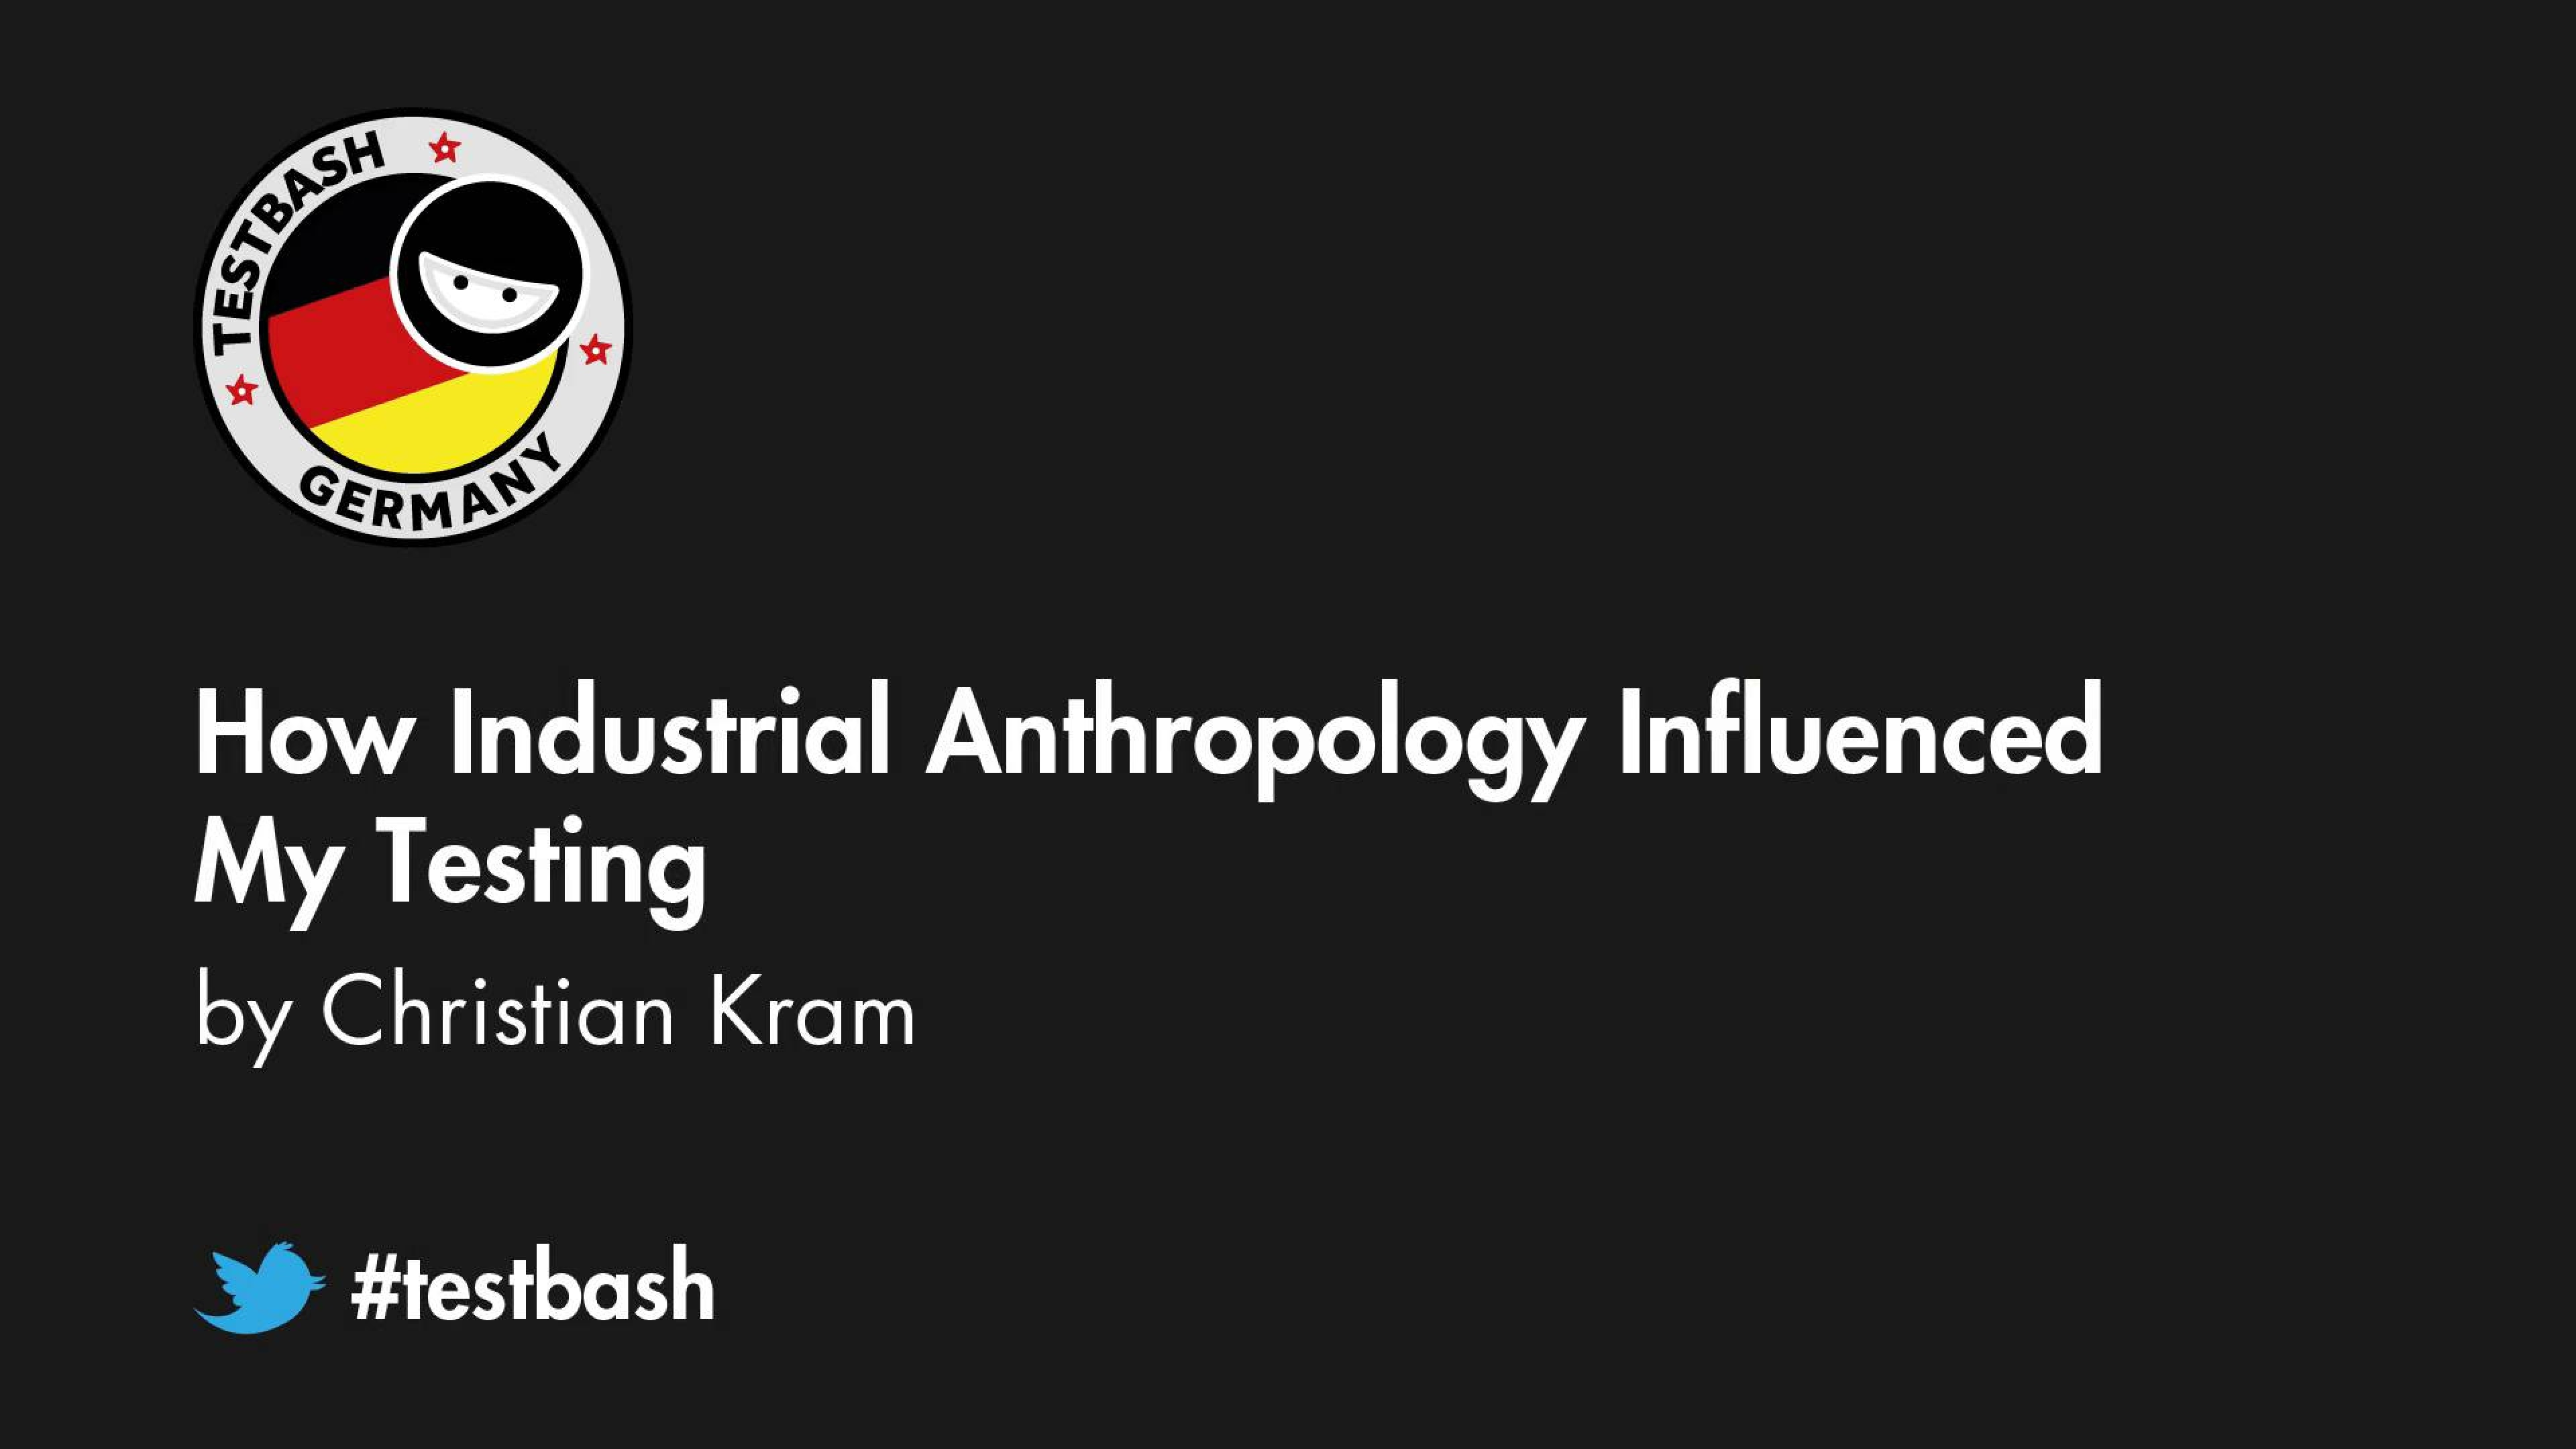 How Industrial Anthropology Influenced My Testing - Christian Kram